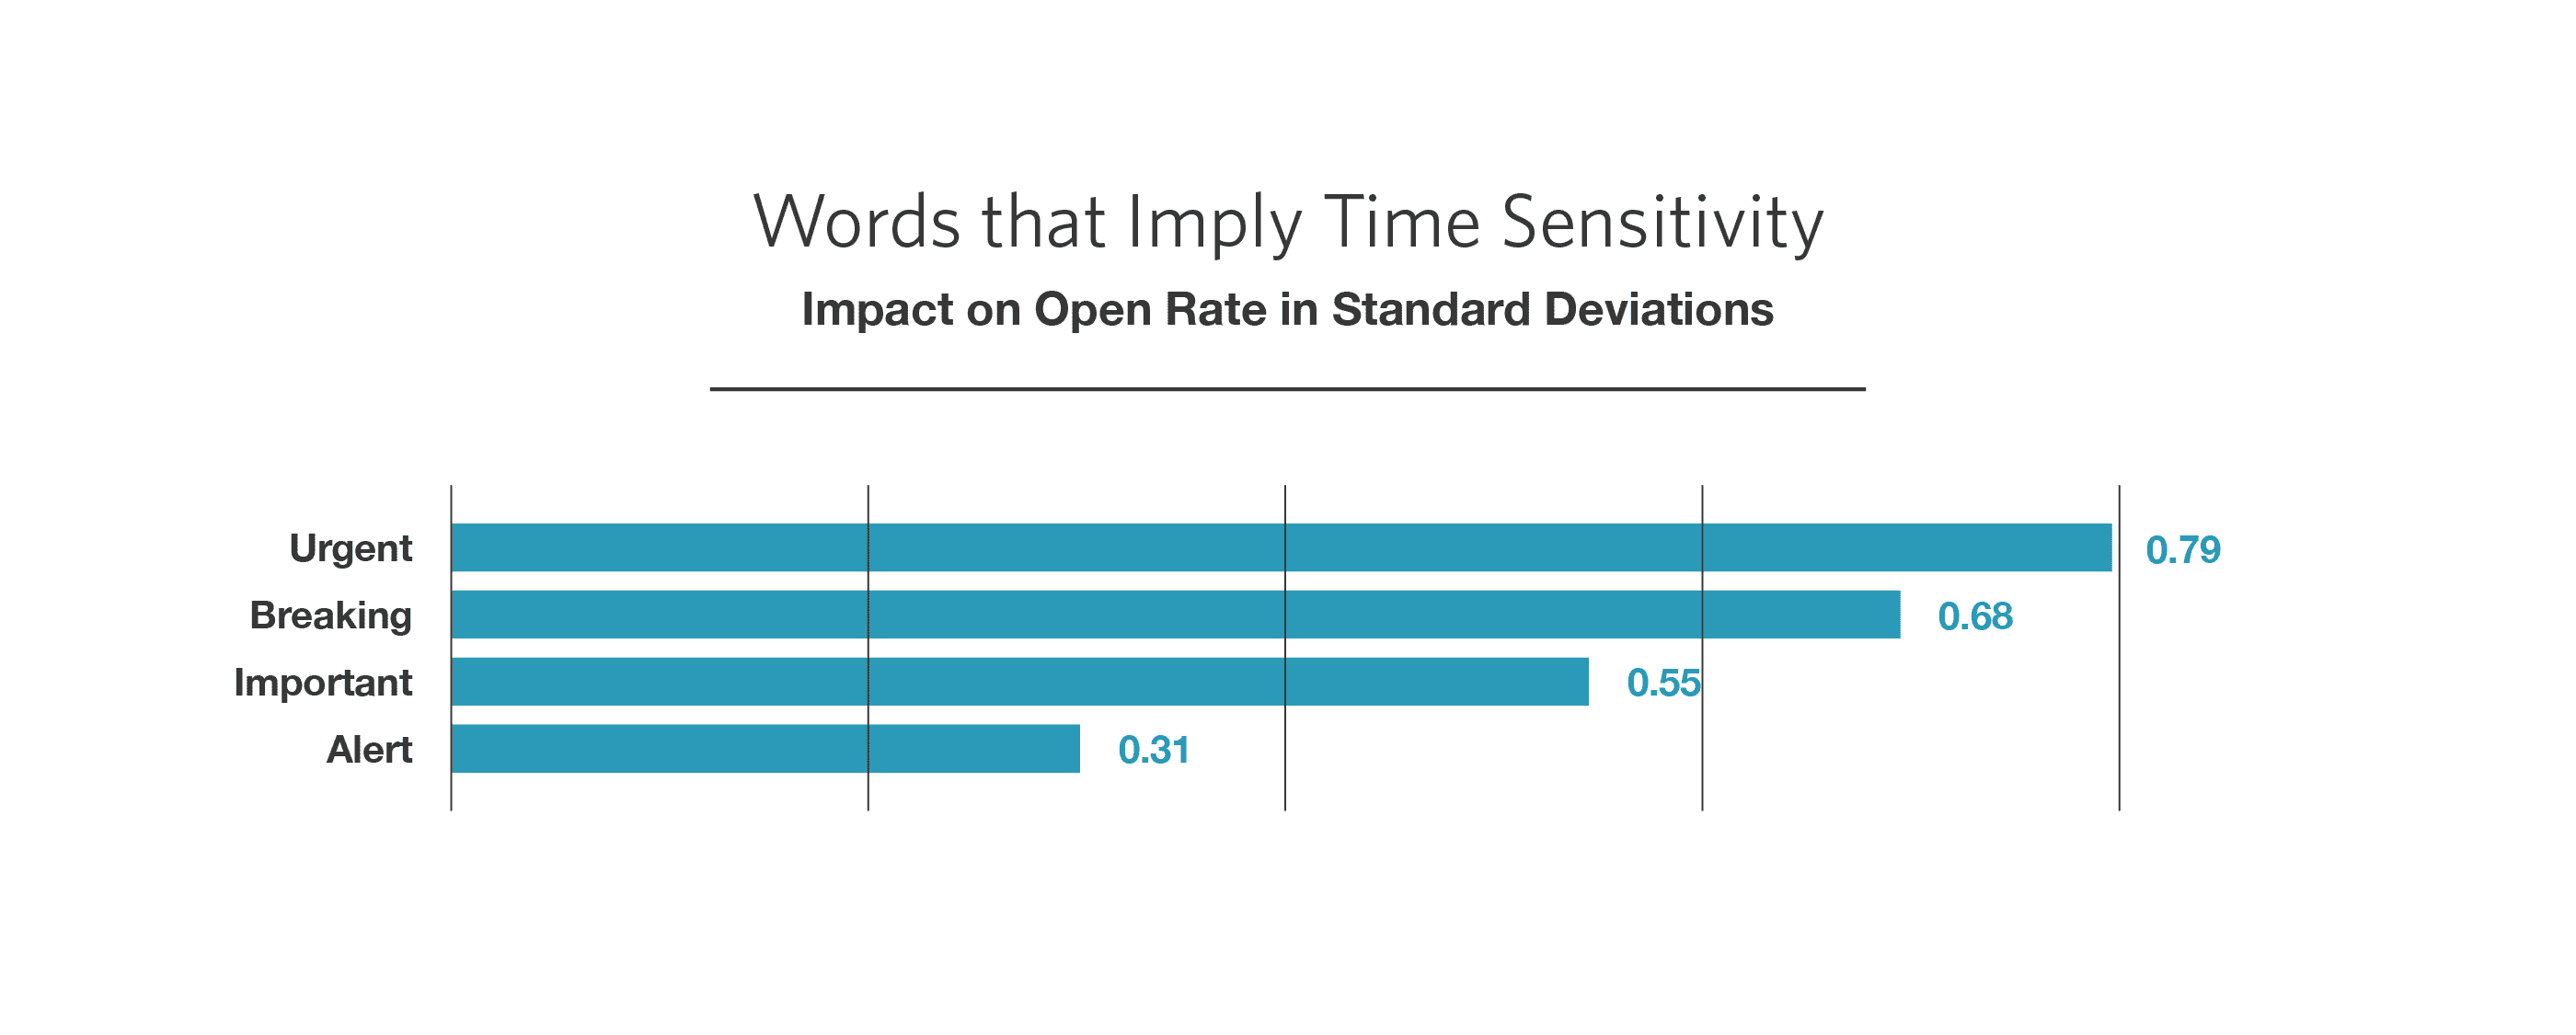 Make it urgent! Implying time sensitivity increases open rates. Just maybe not say something is urgent ... when it isn't